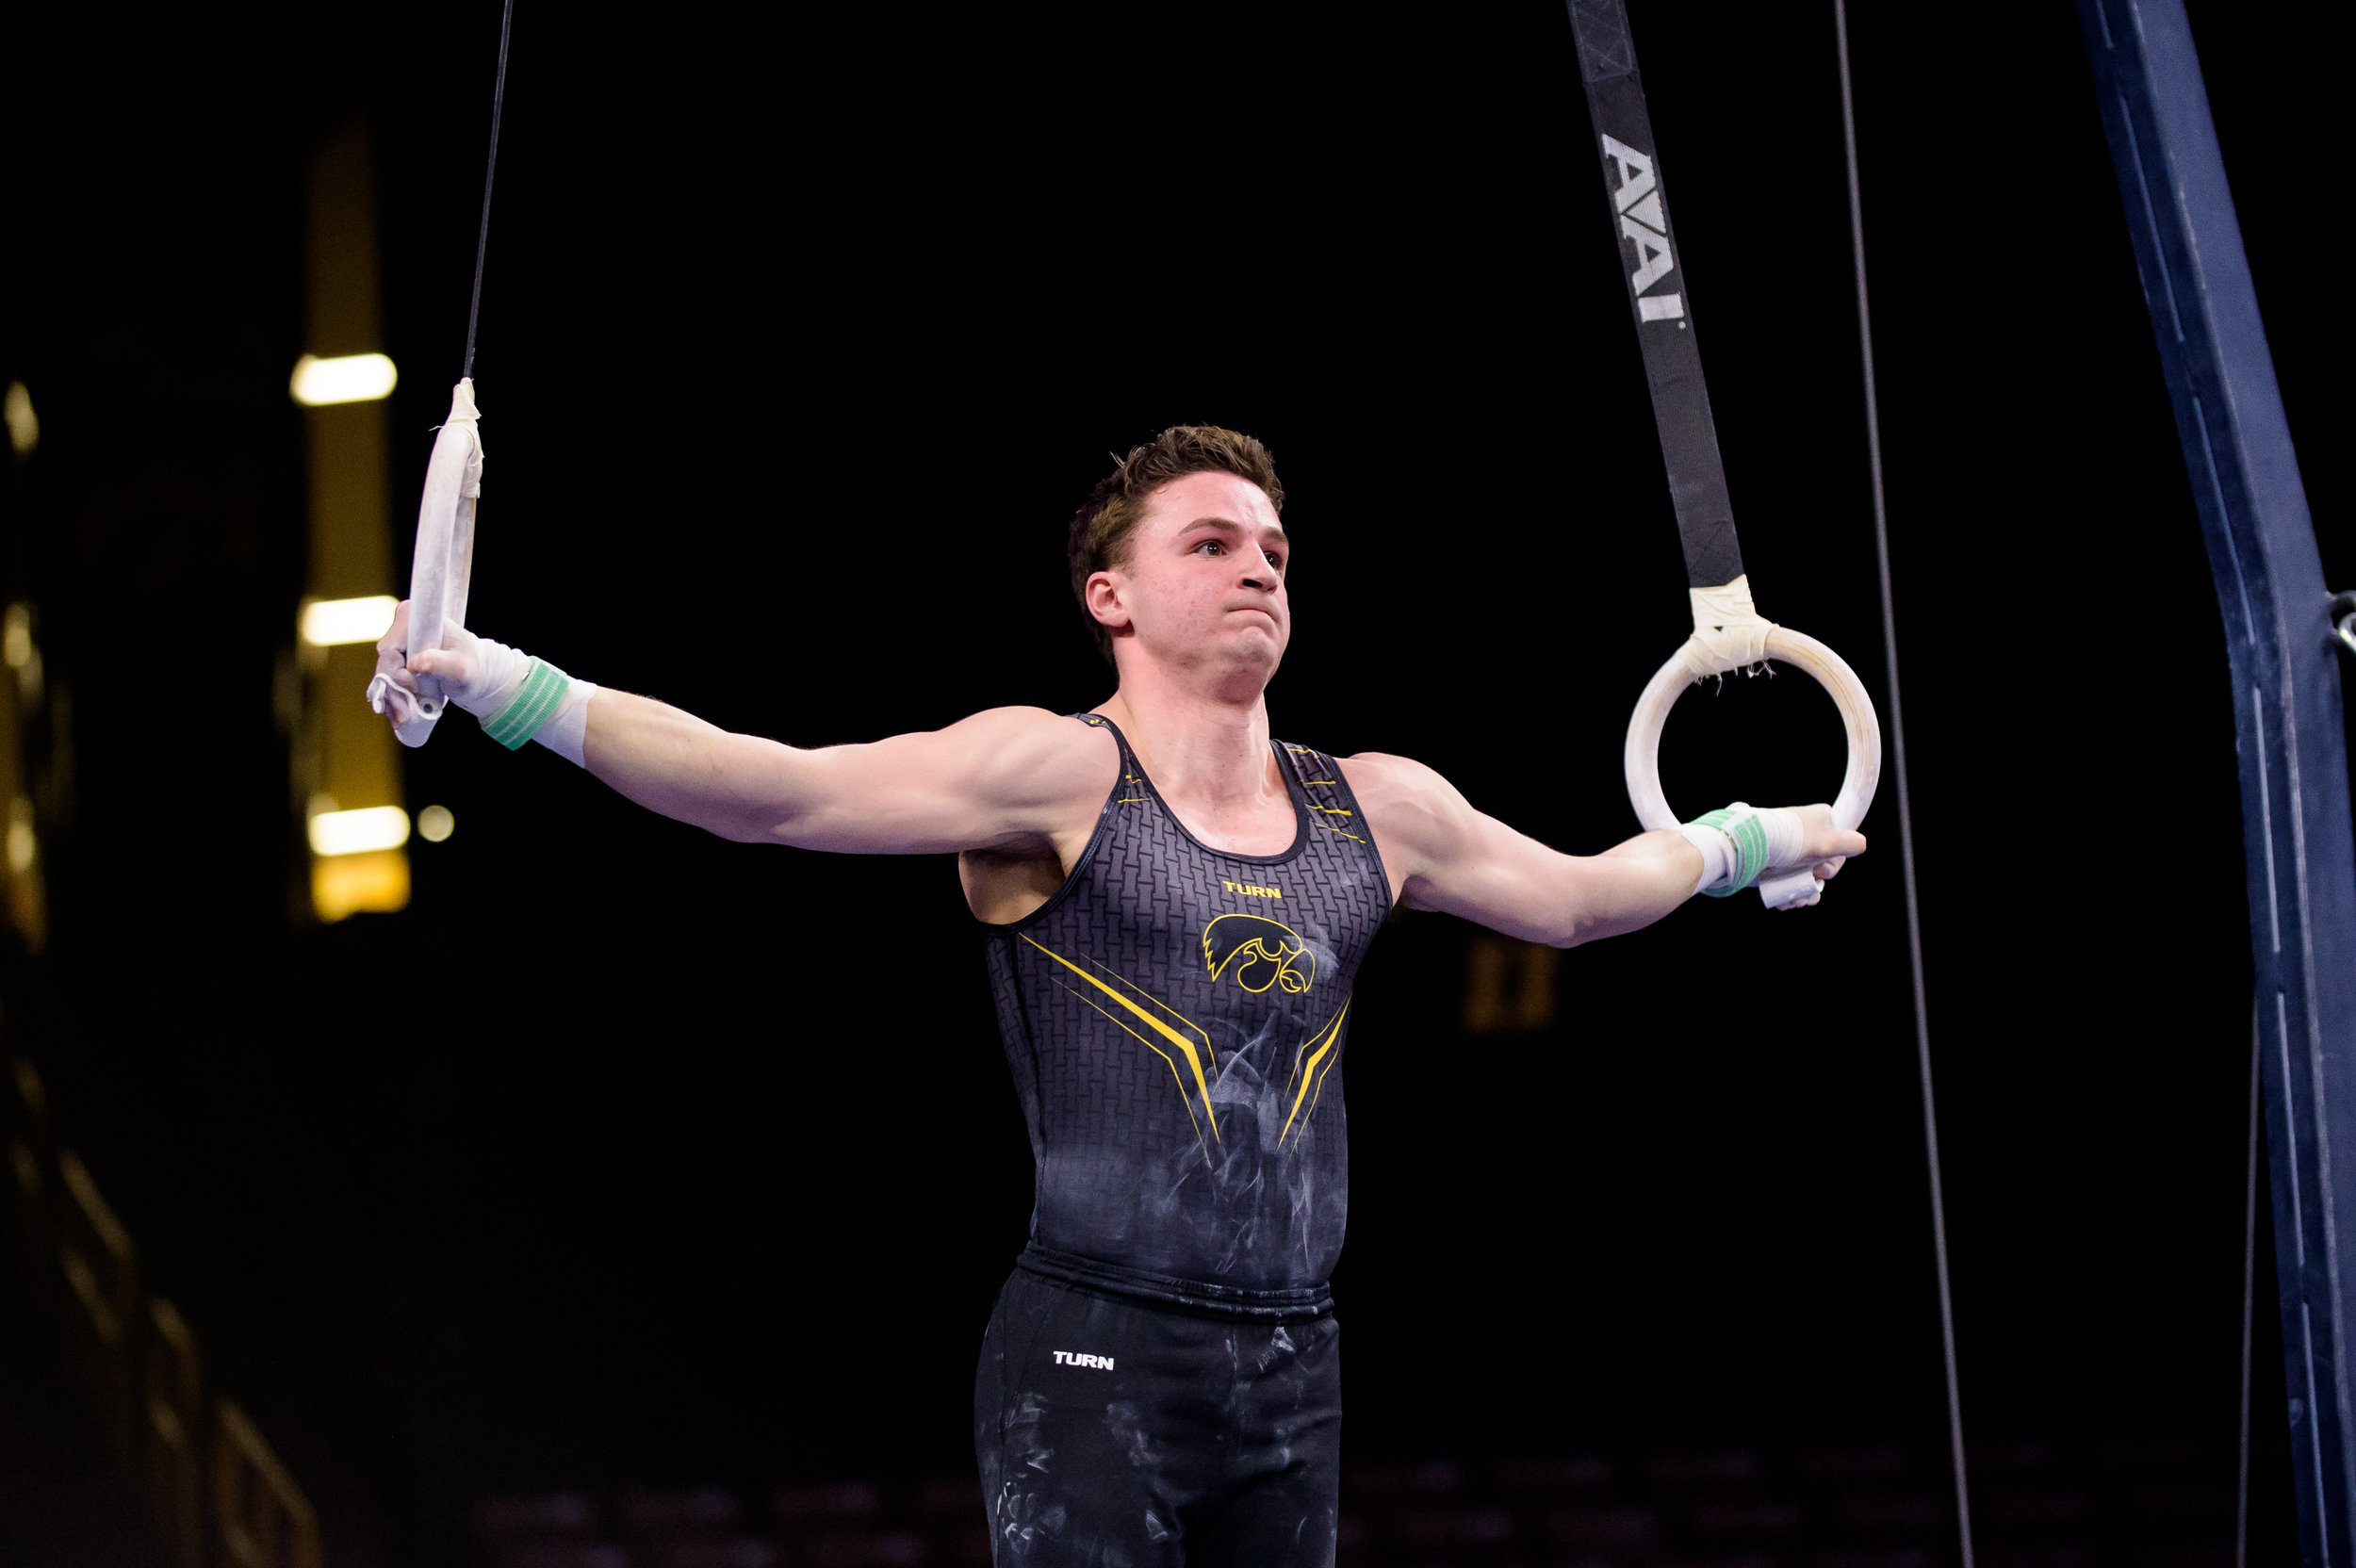 Jake Brodarzon has been a driving force behind Iowa's 2019 success. (photo: Jess Frankl)